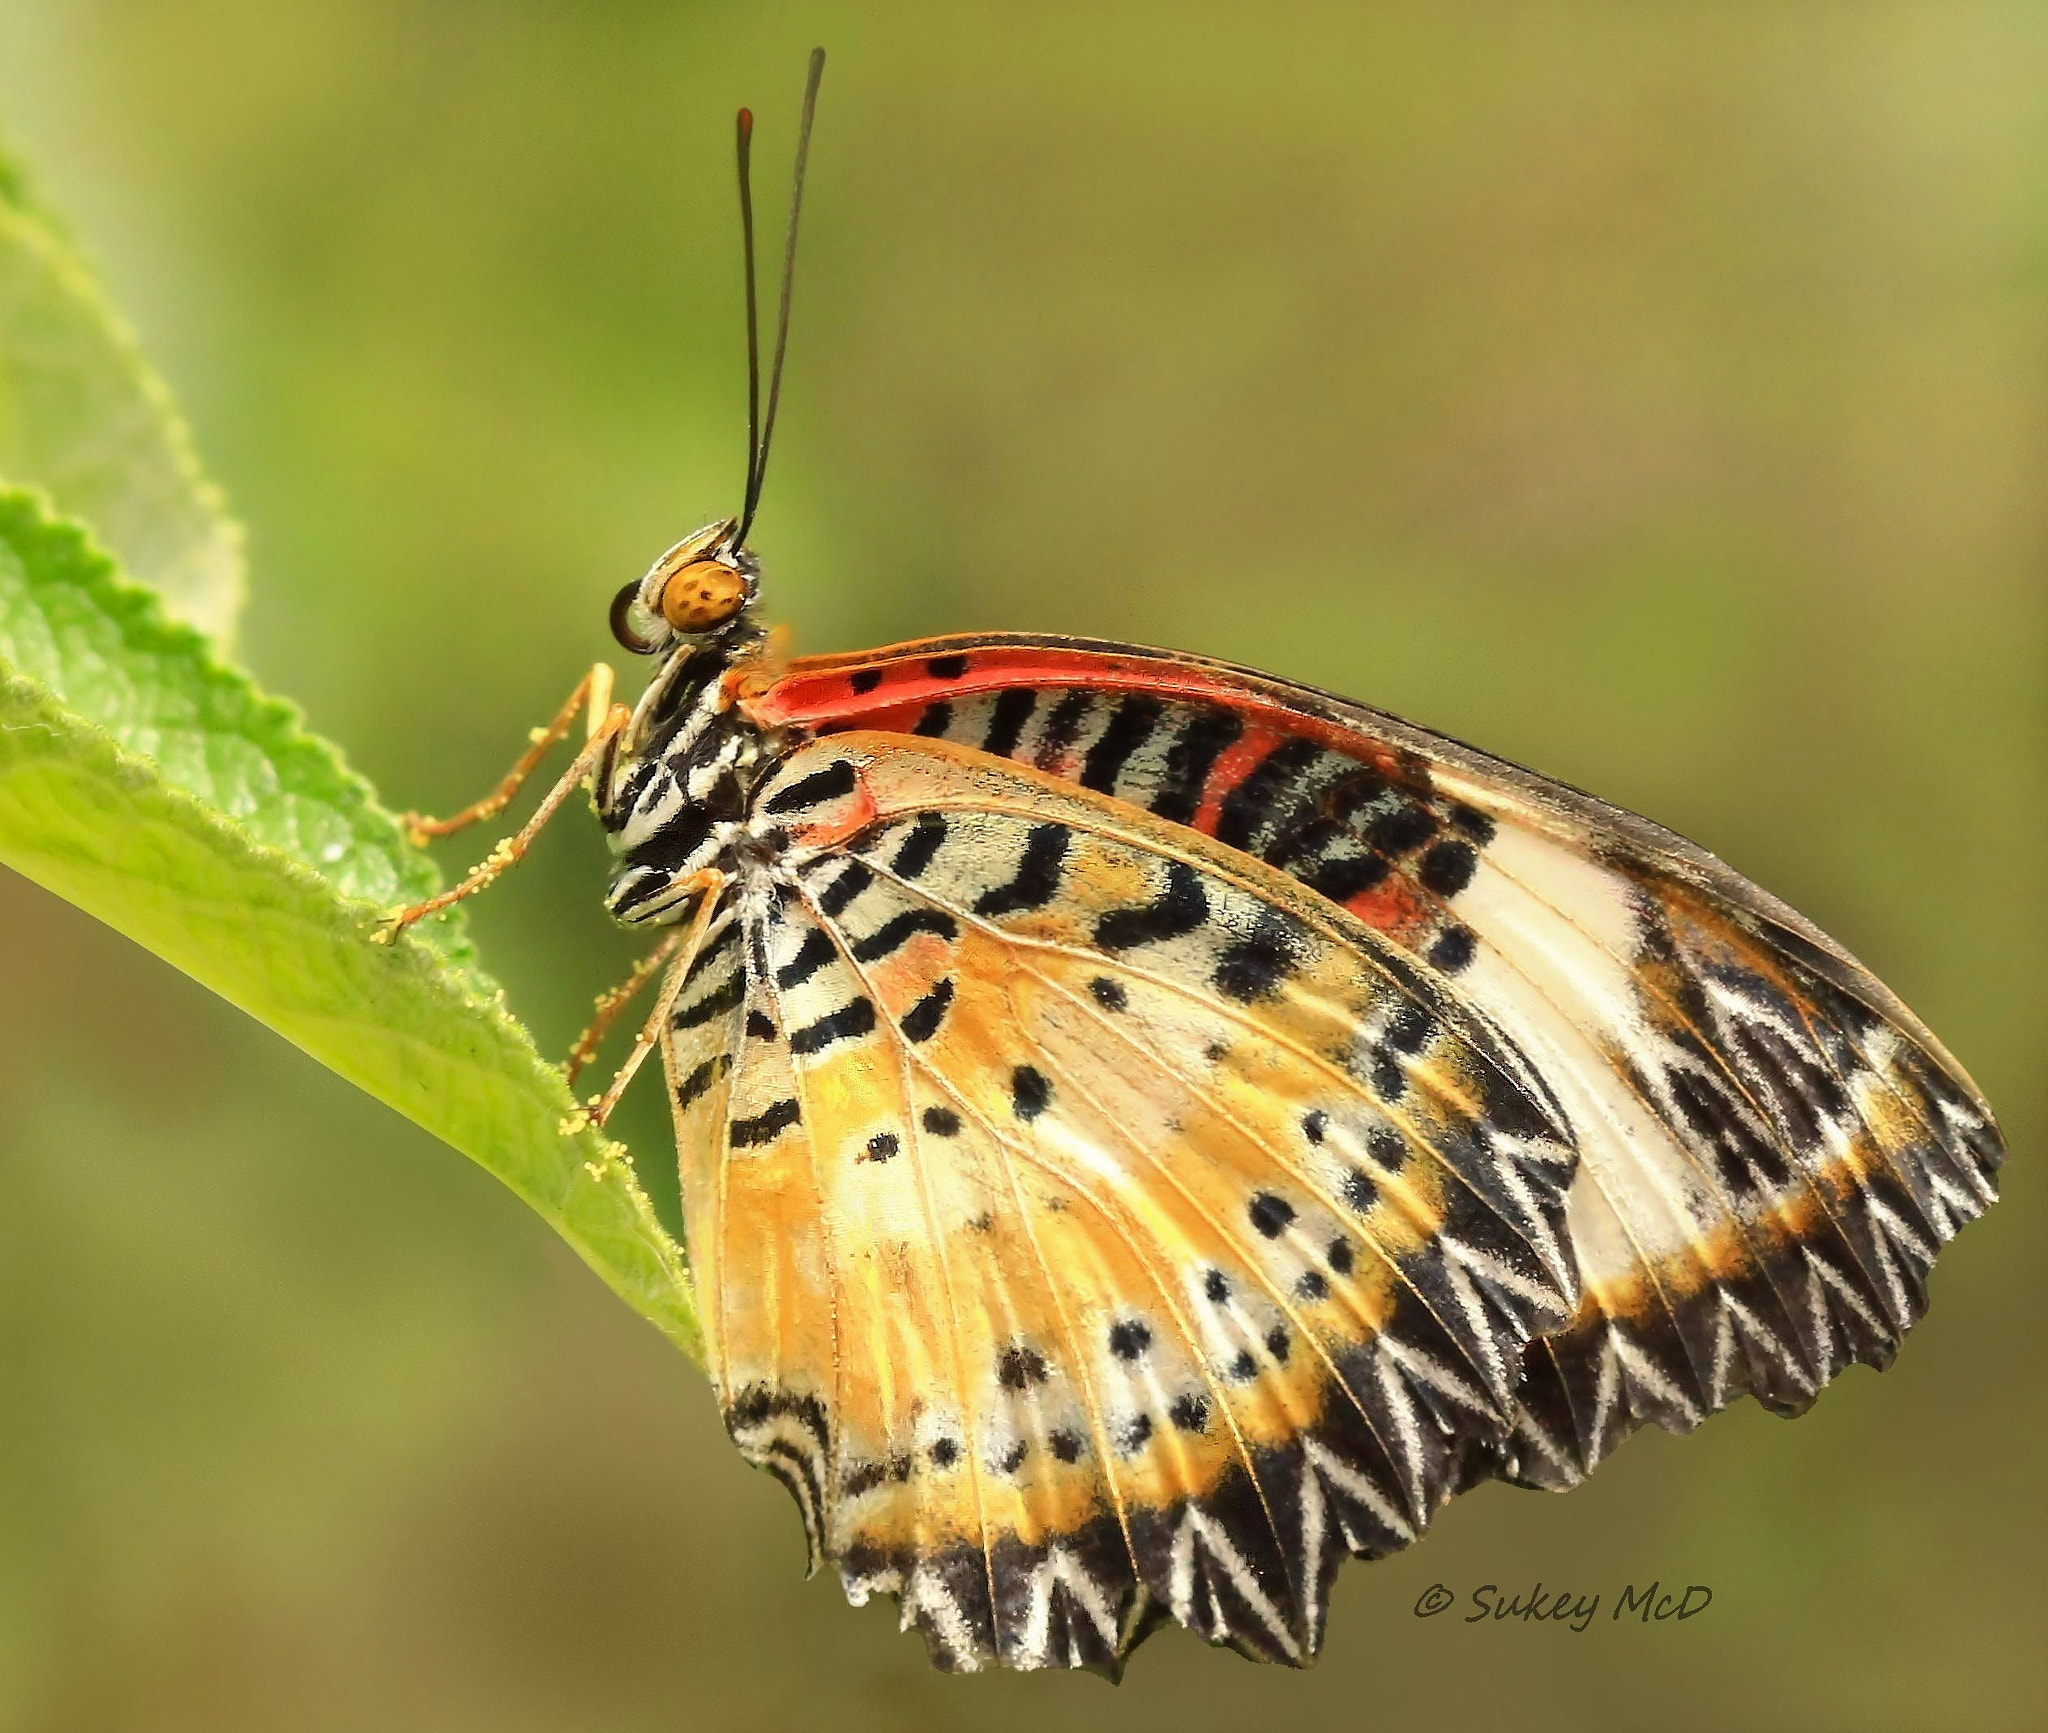 Photograph Red Lacewing by Sue McD on 500px